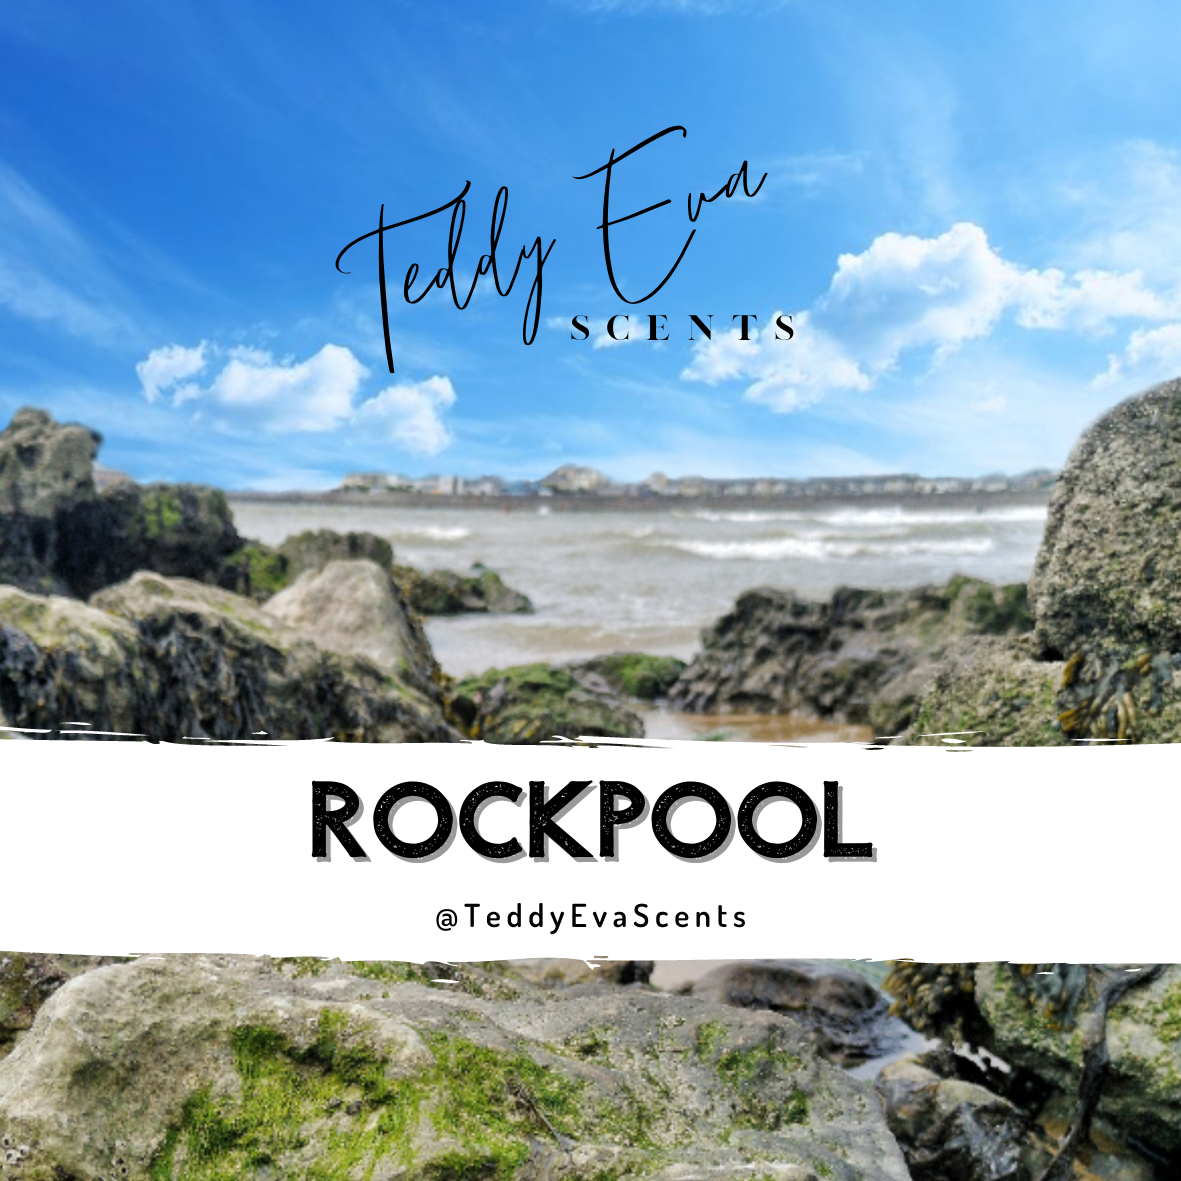 Rockpool Teddy Pot